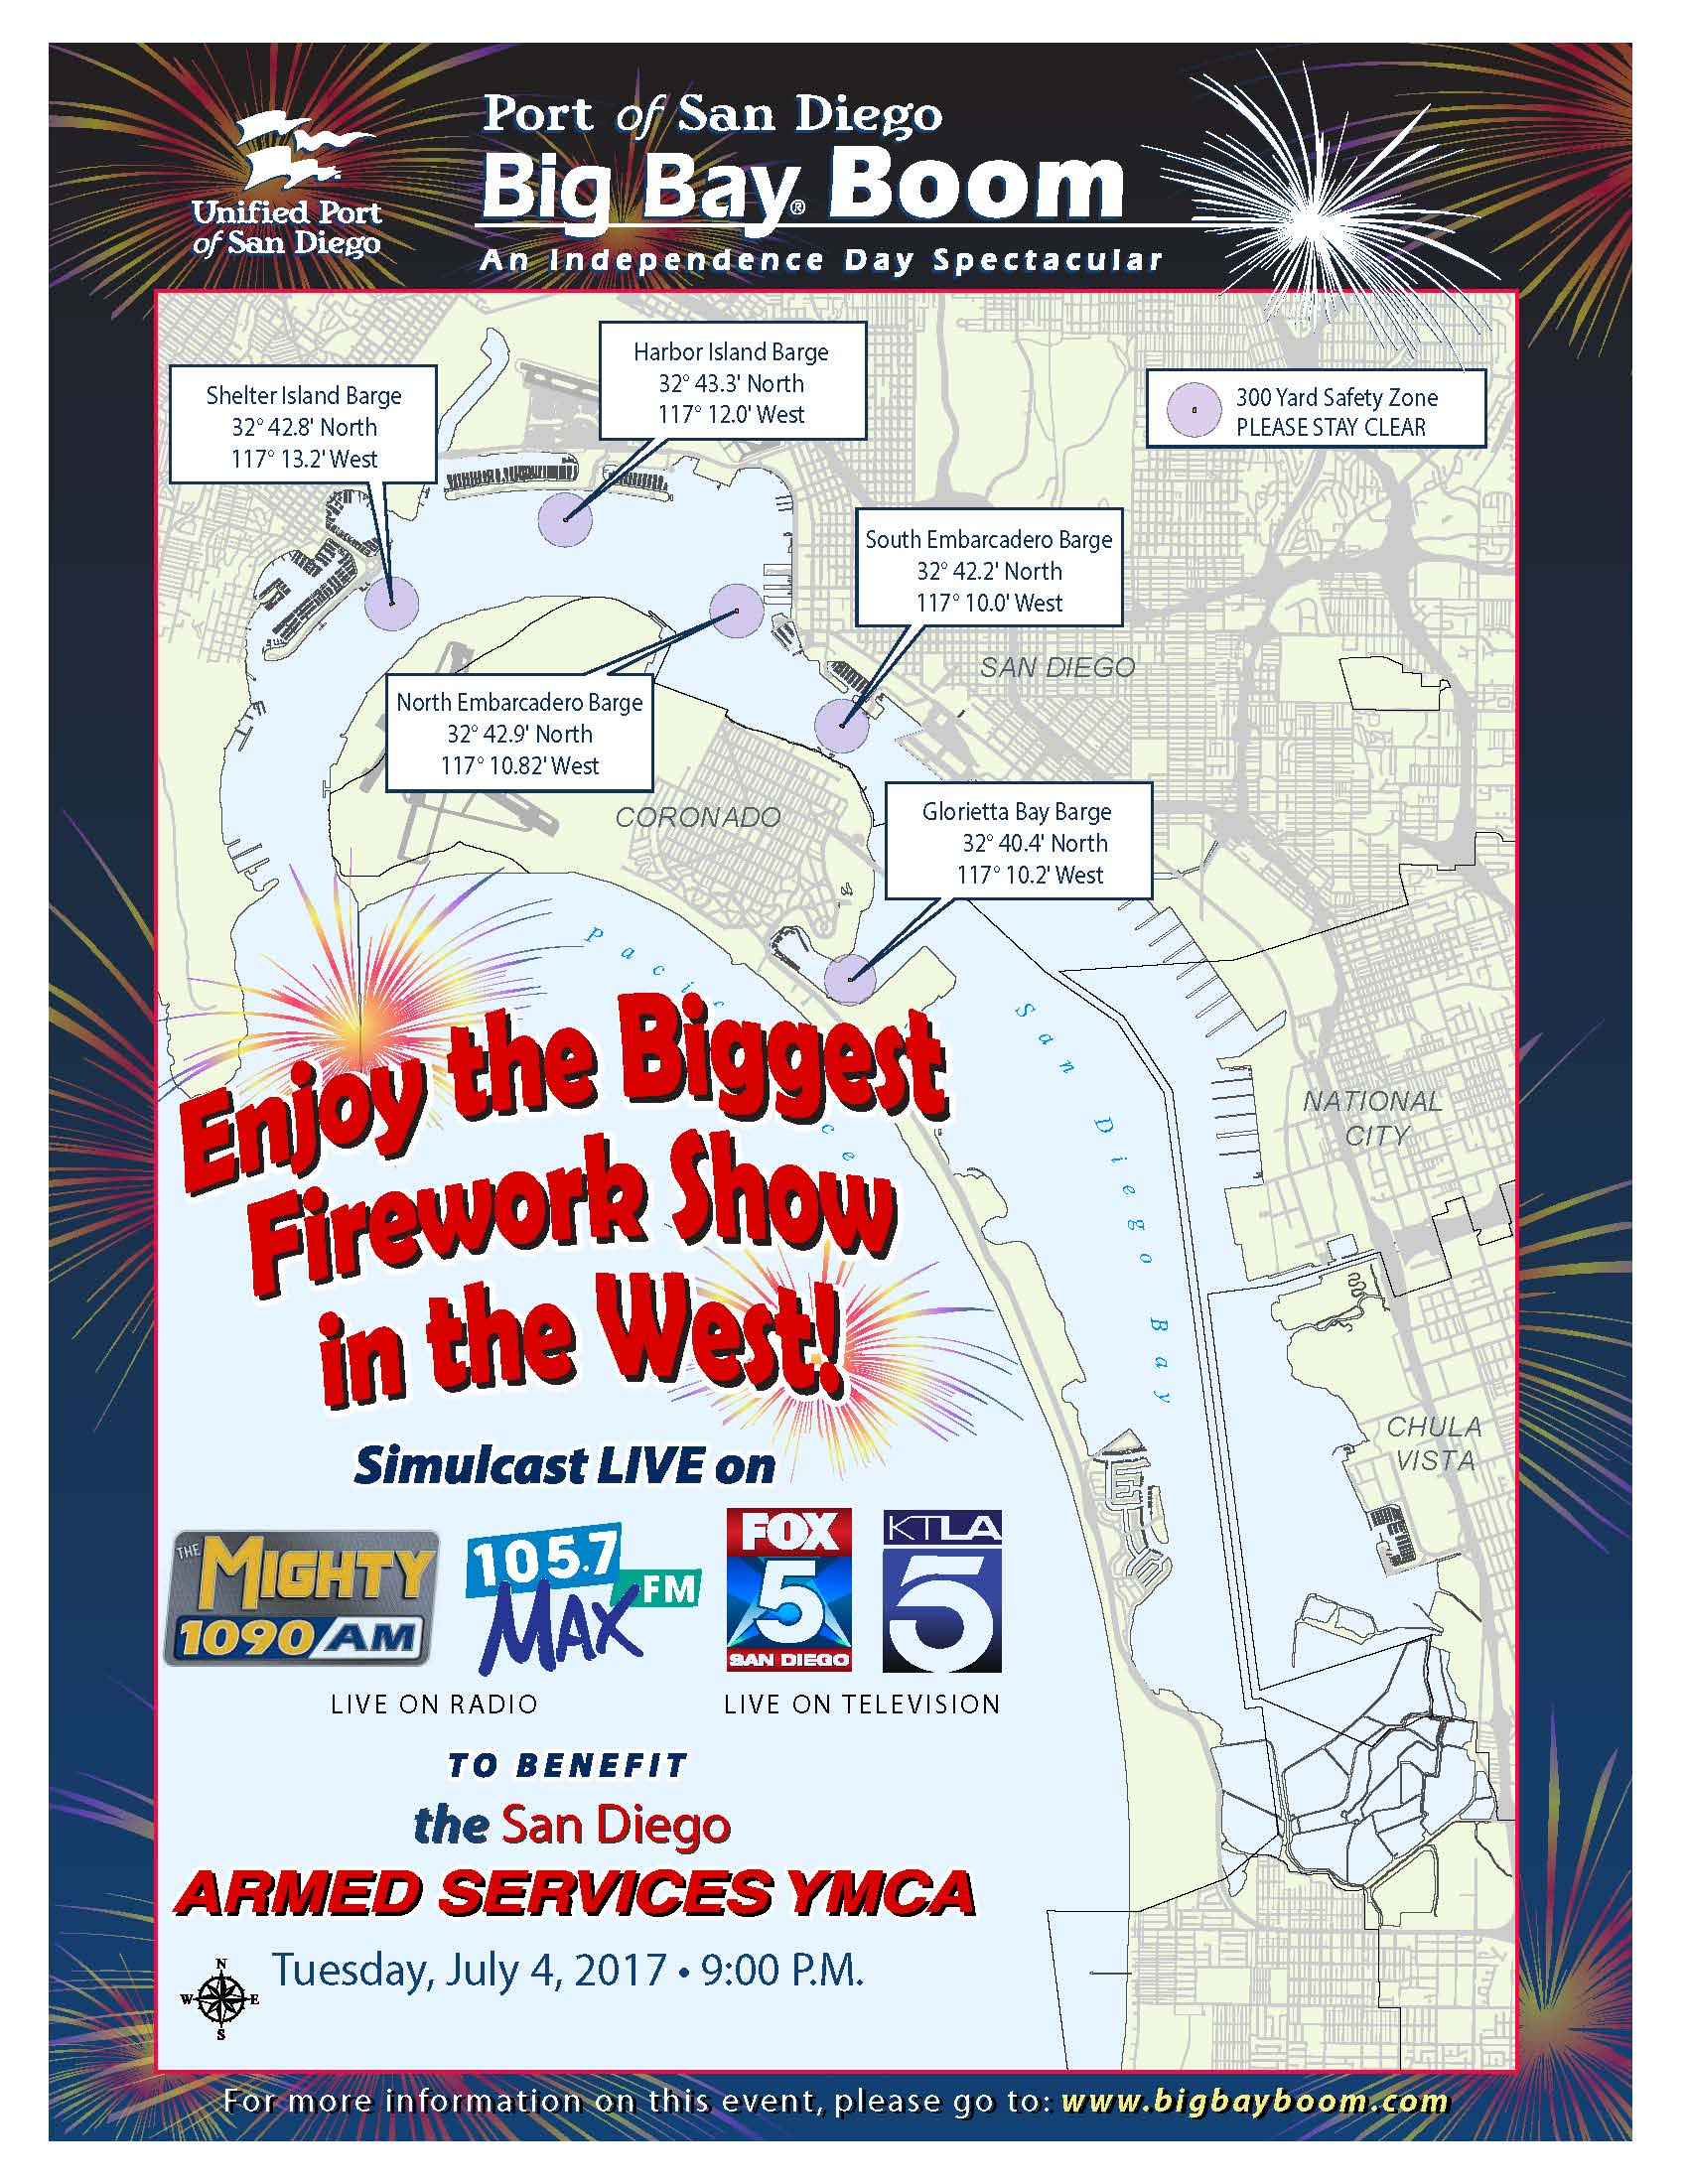 2015 Big Bay Boom Fireworks Where To Watch